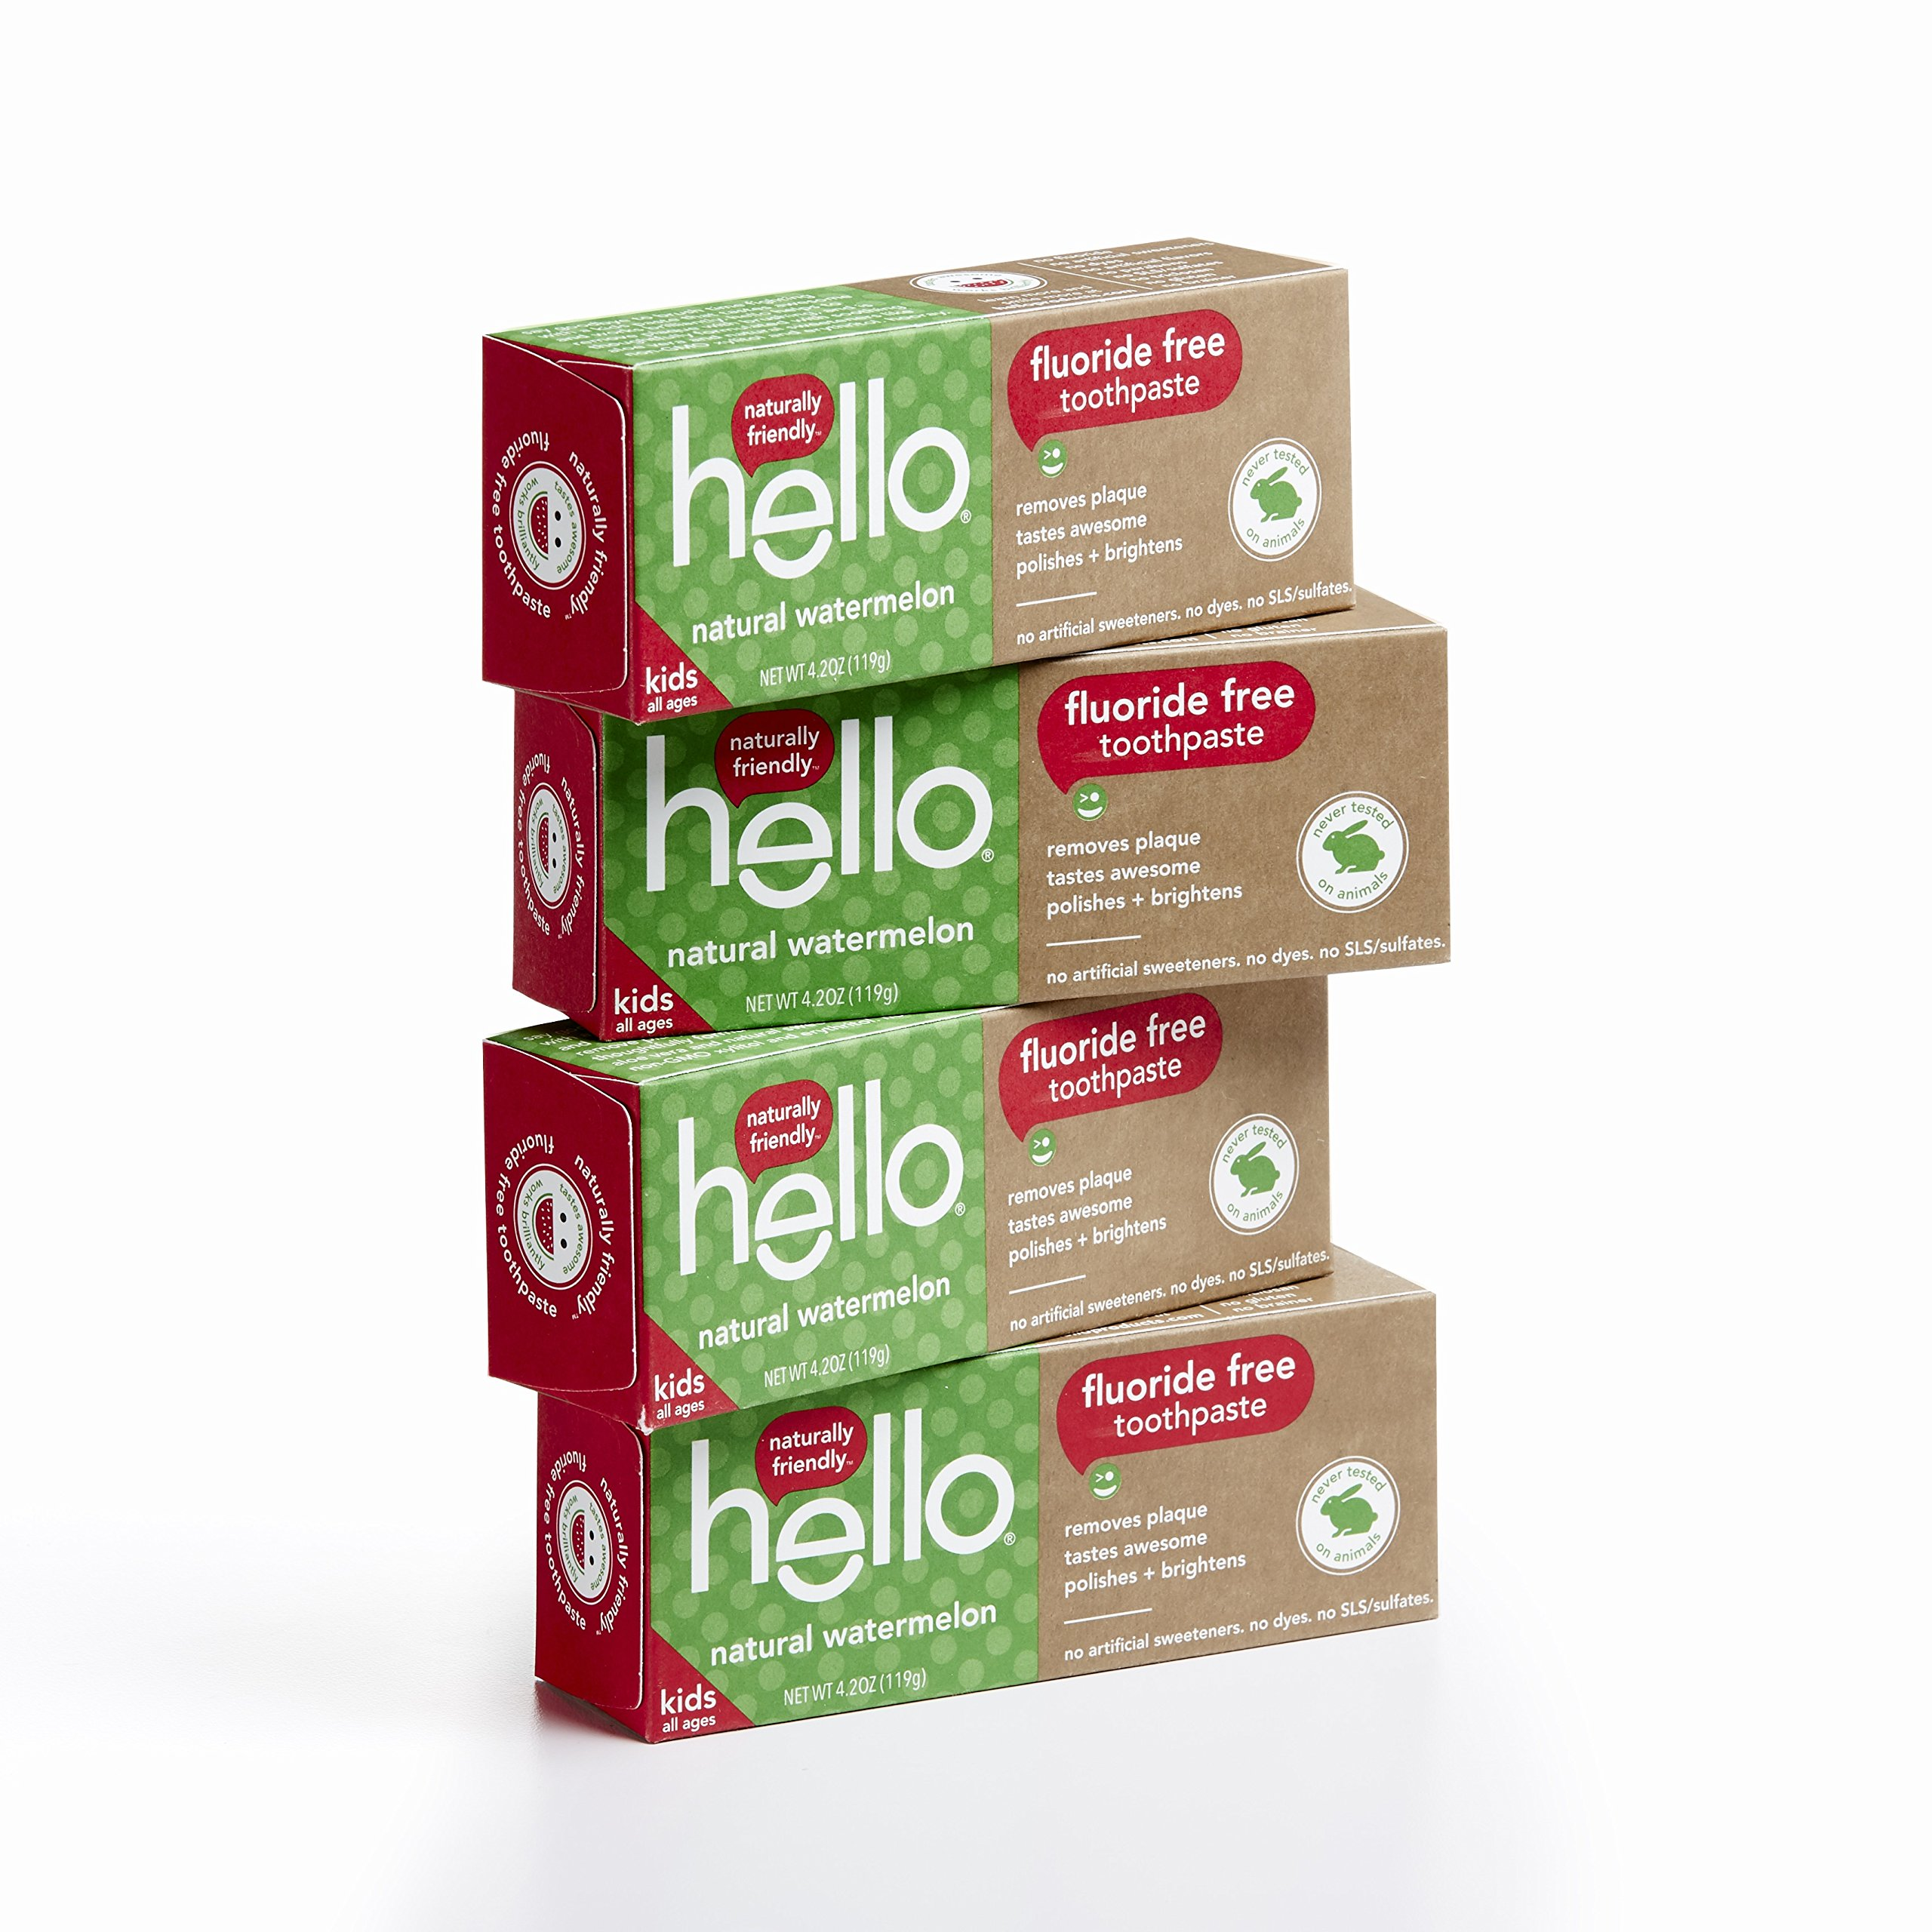 Hello Oral Care Fluoride Free Toothpaste for Kids 3 Months+, Natural Watermelon, 4 Count